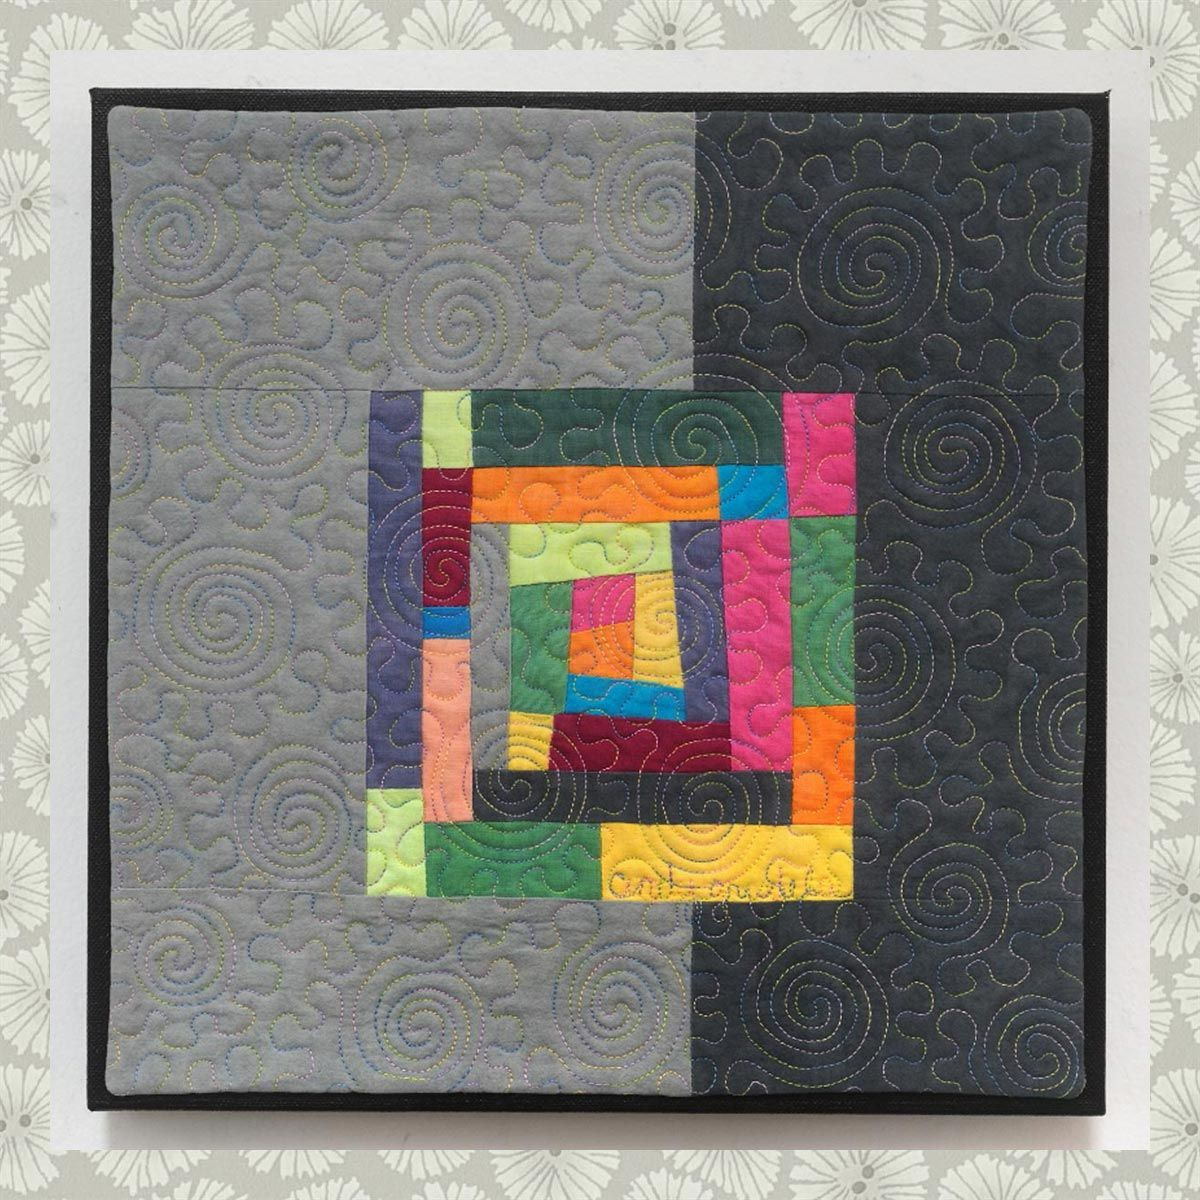 Cindy Grisdela Art Quilts: Festival schedule and a nice display of what's avai…